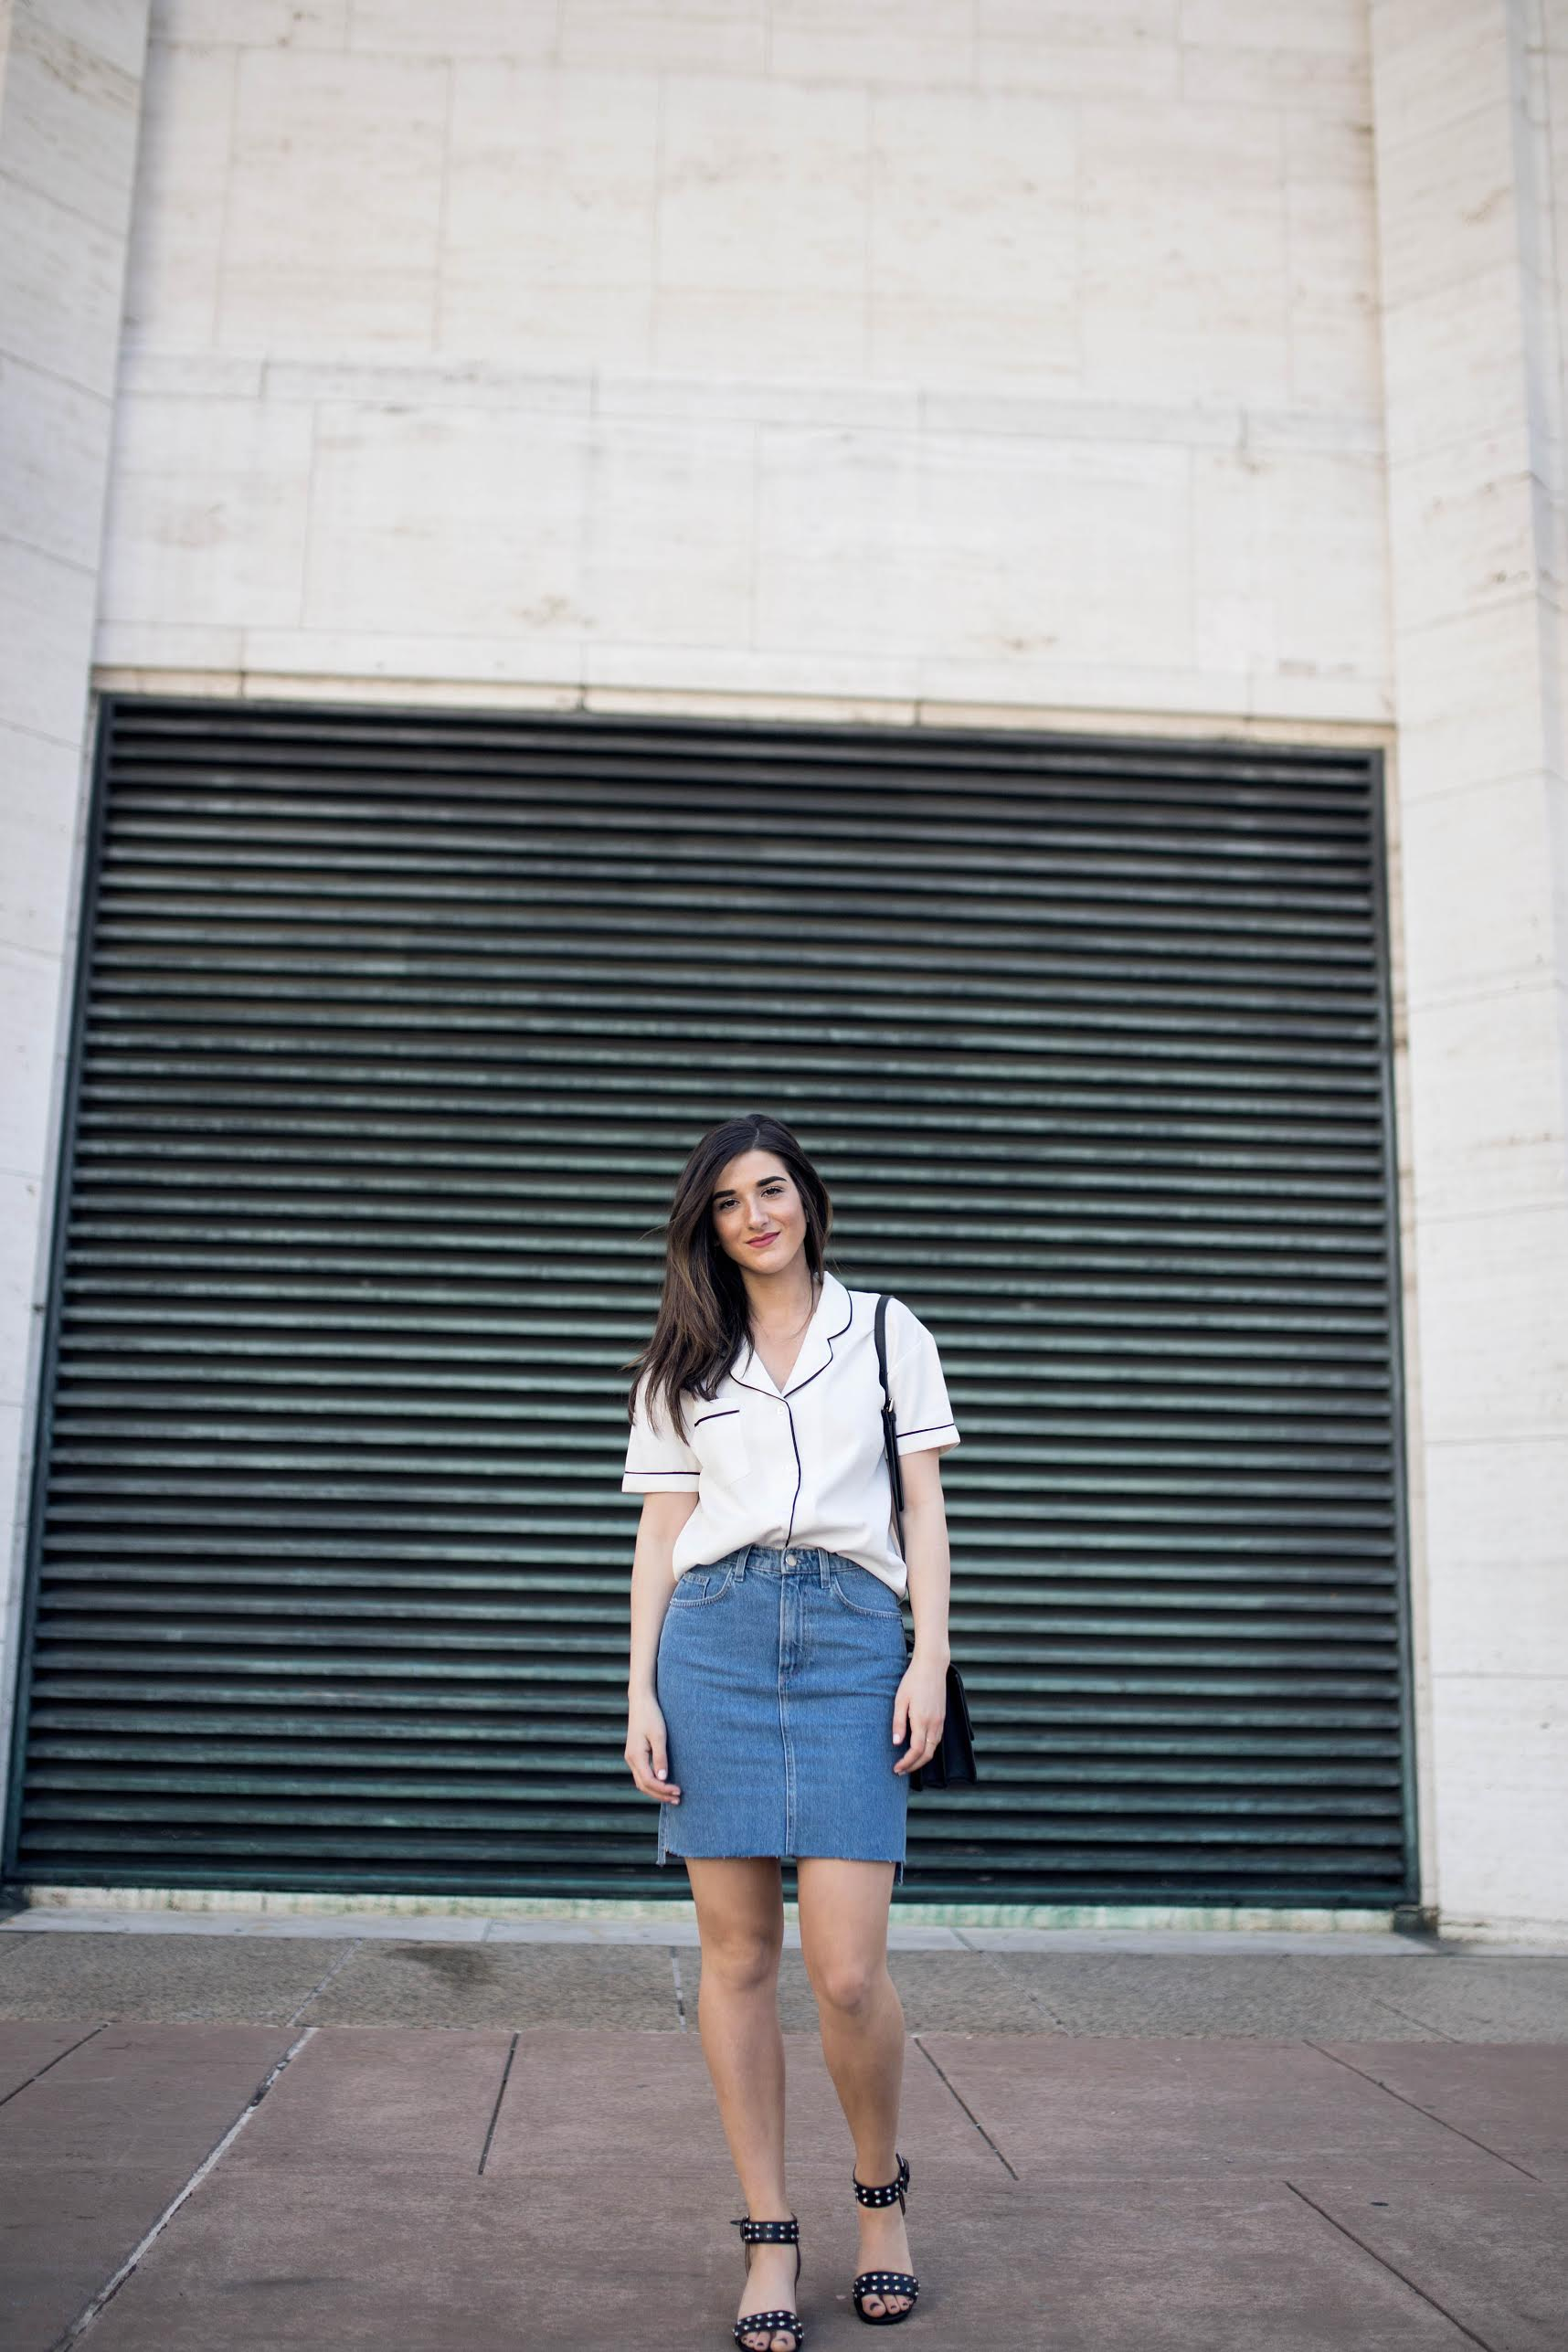 Pajama Top Denim Skirt 4 Reasons to Think Twice Before Signing a Contract Esther Santer Fashion Blog NYC Street Style Blogger Outfit OOTD Trendy Collar Light Jean Studded Sandals Shoes Summer Look Inspo Hair Photoshoot Model Girl Women Purse Shopping.jpg